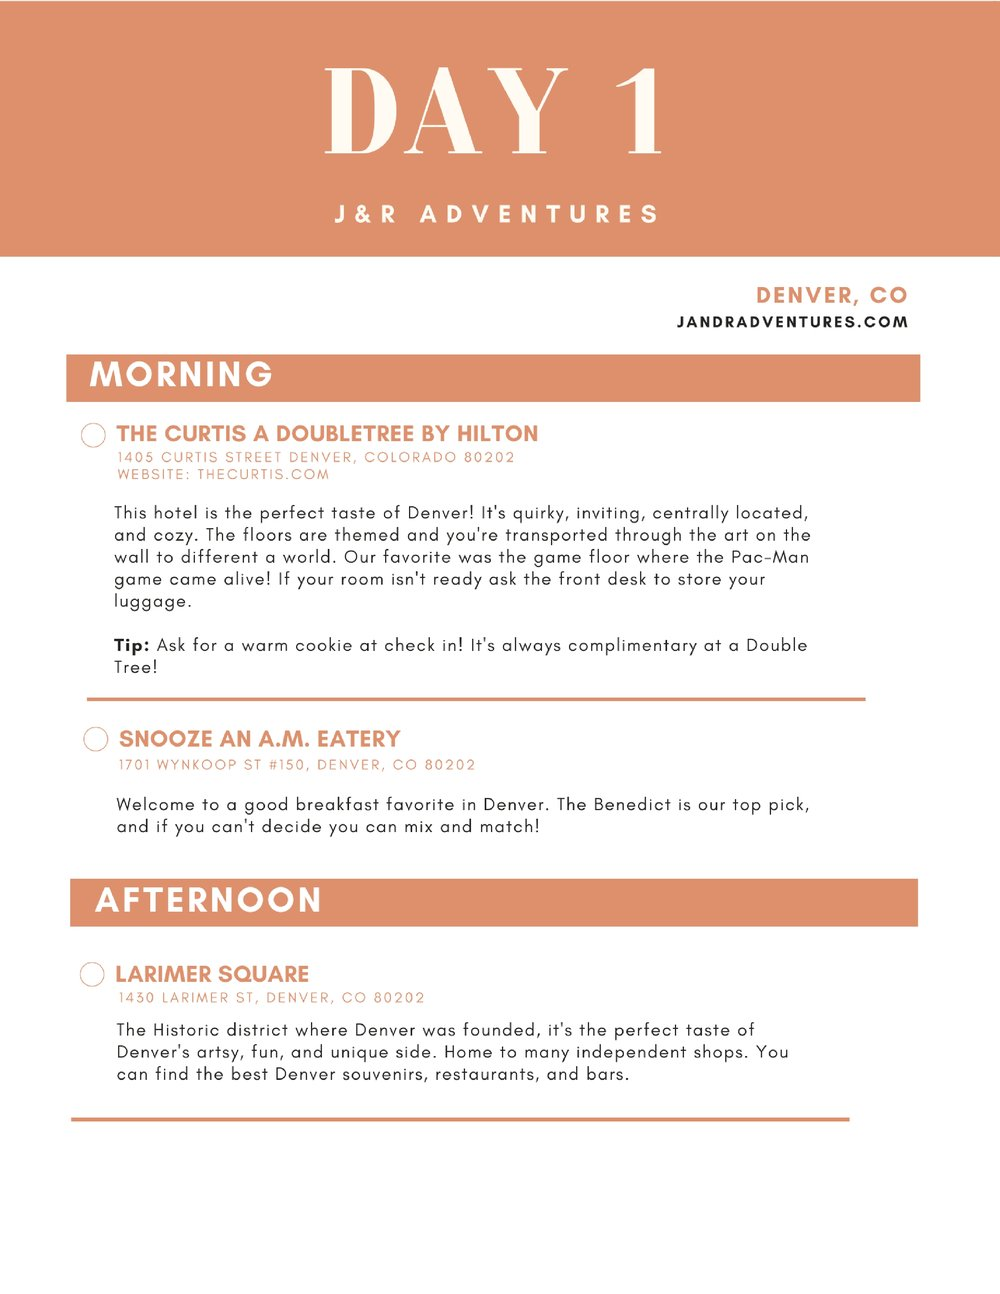 denver, co 3 day detailed itinerary(3).jpg